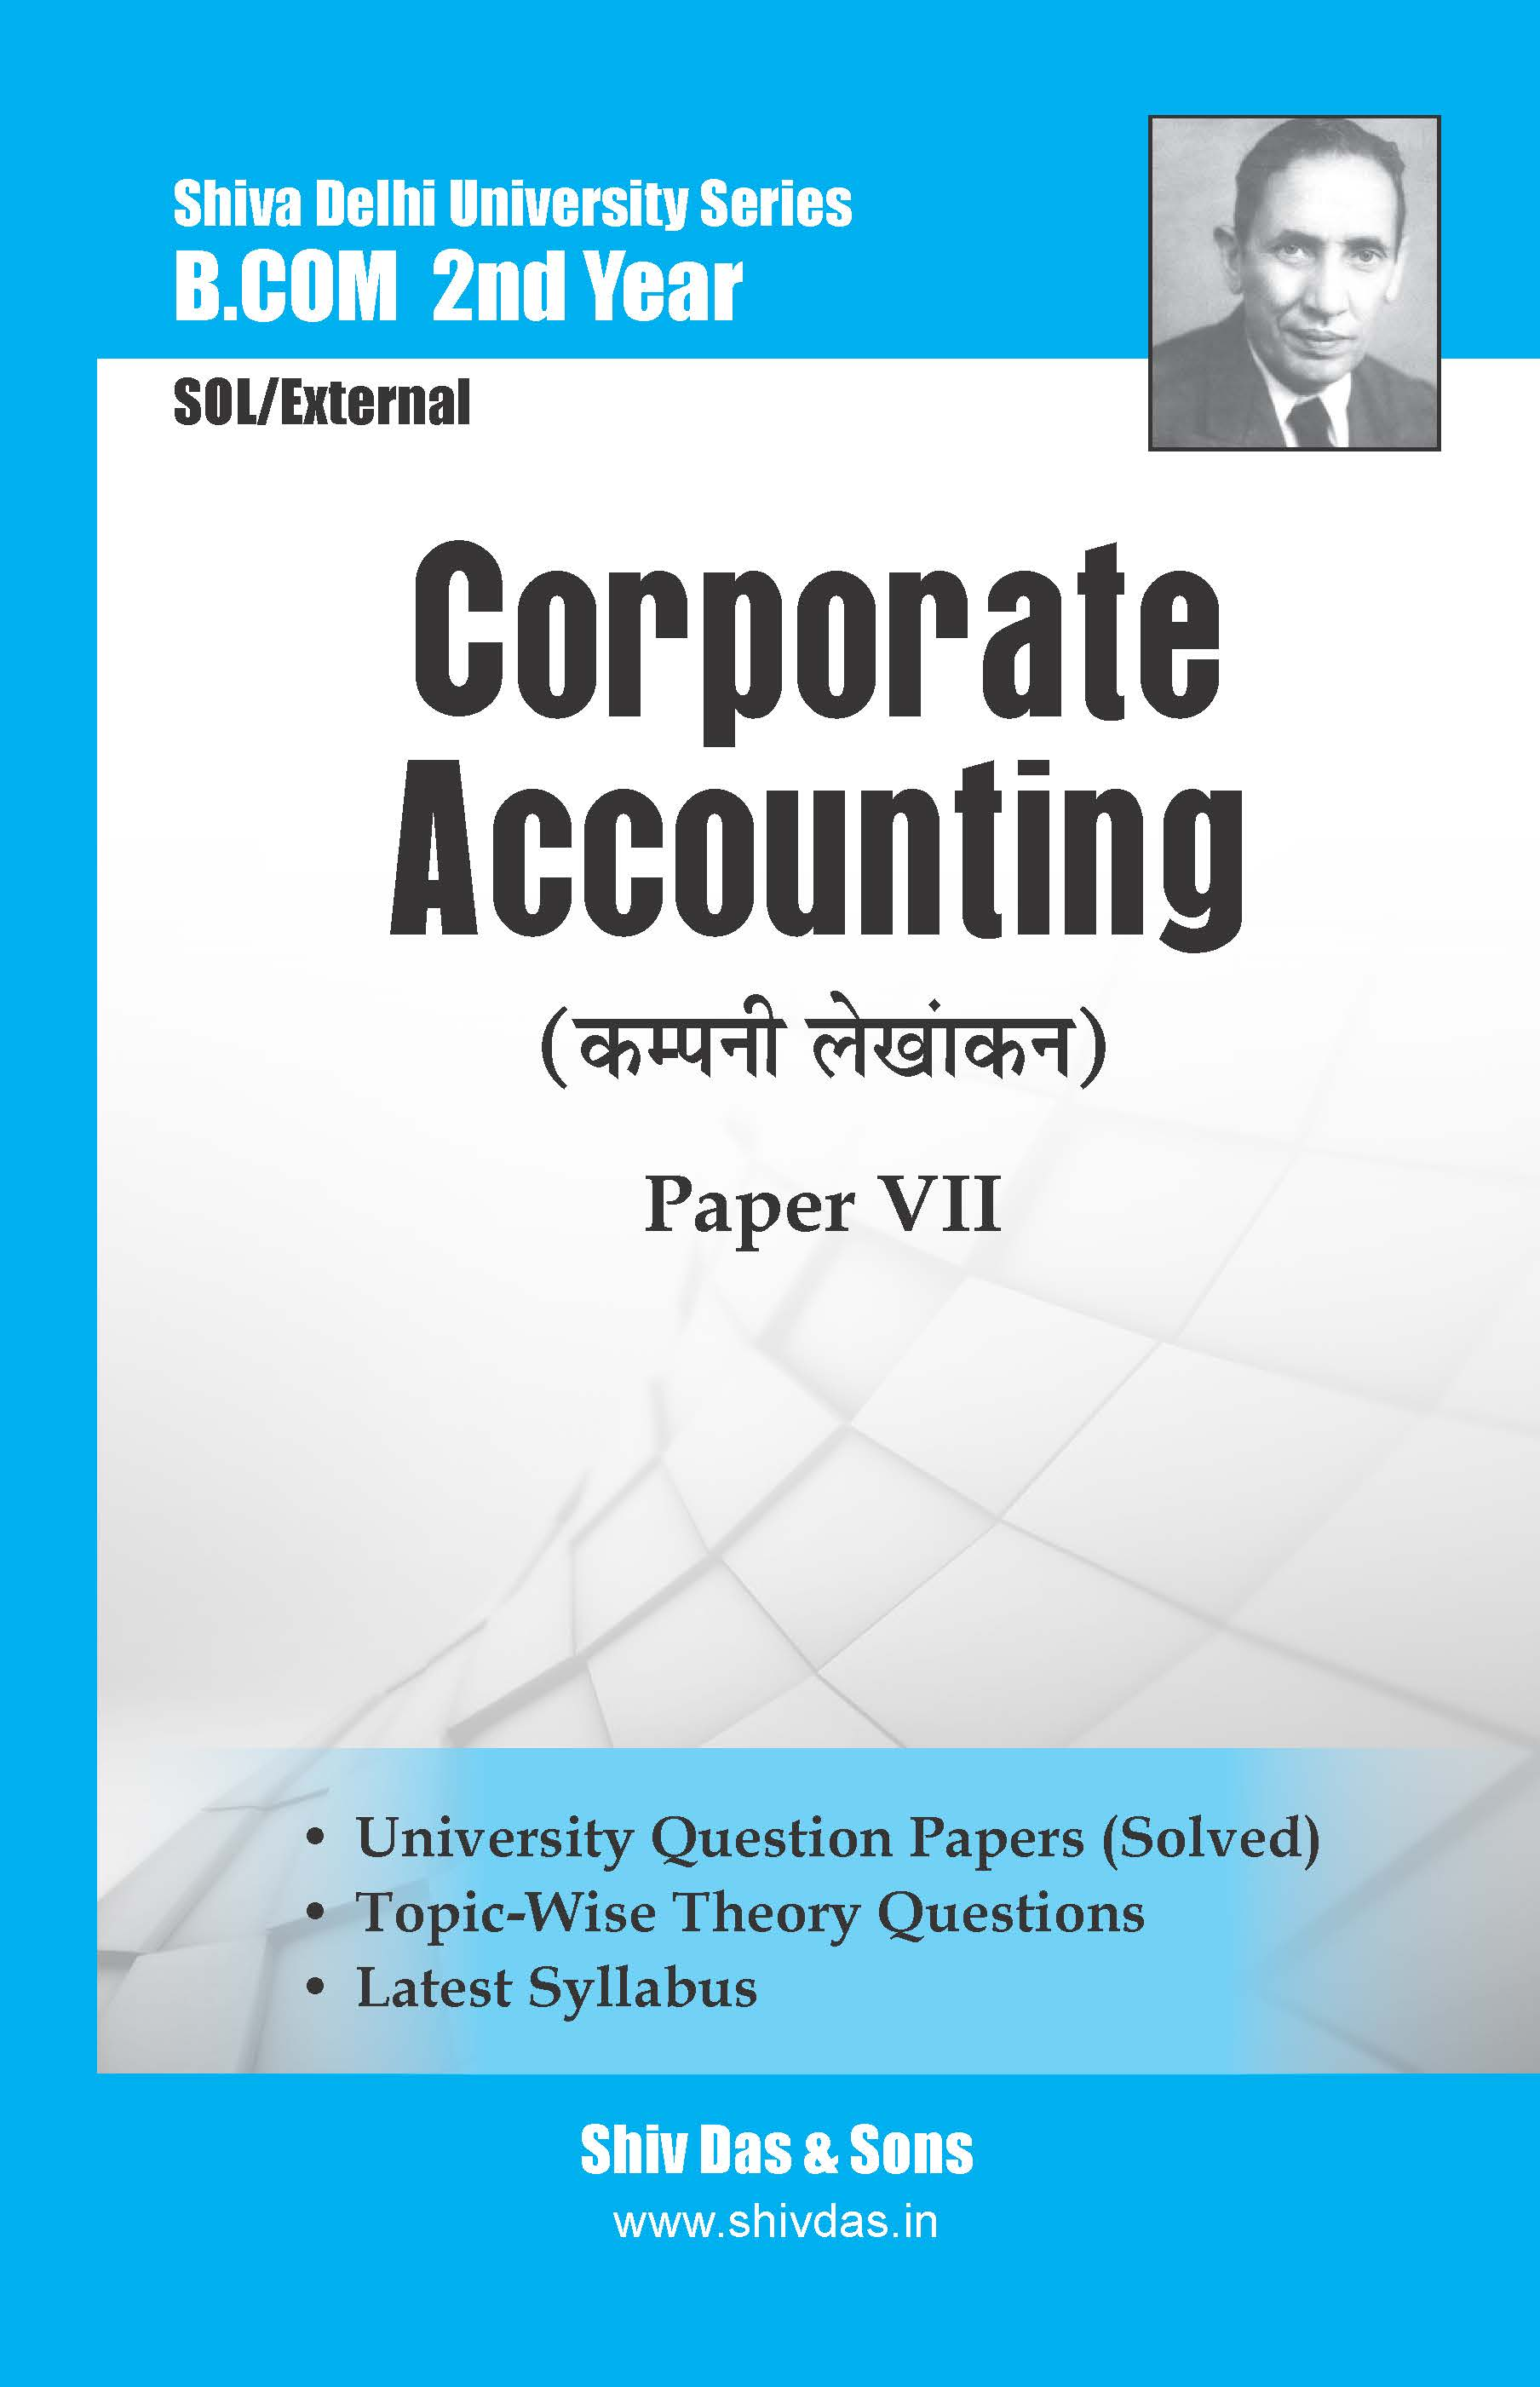 B.Com-2nd Year-SOL/External-Corporate Accounting (Hindi Medium)-Shiv Das-Delhi University Series